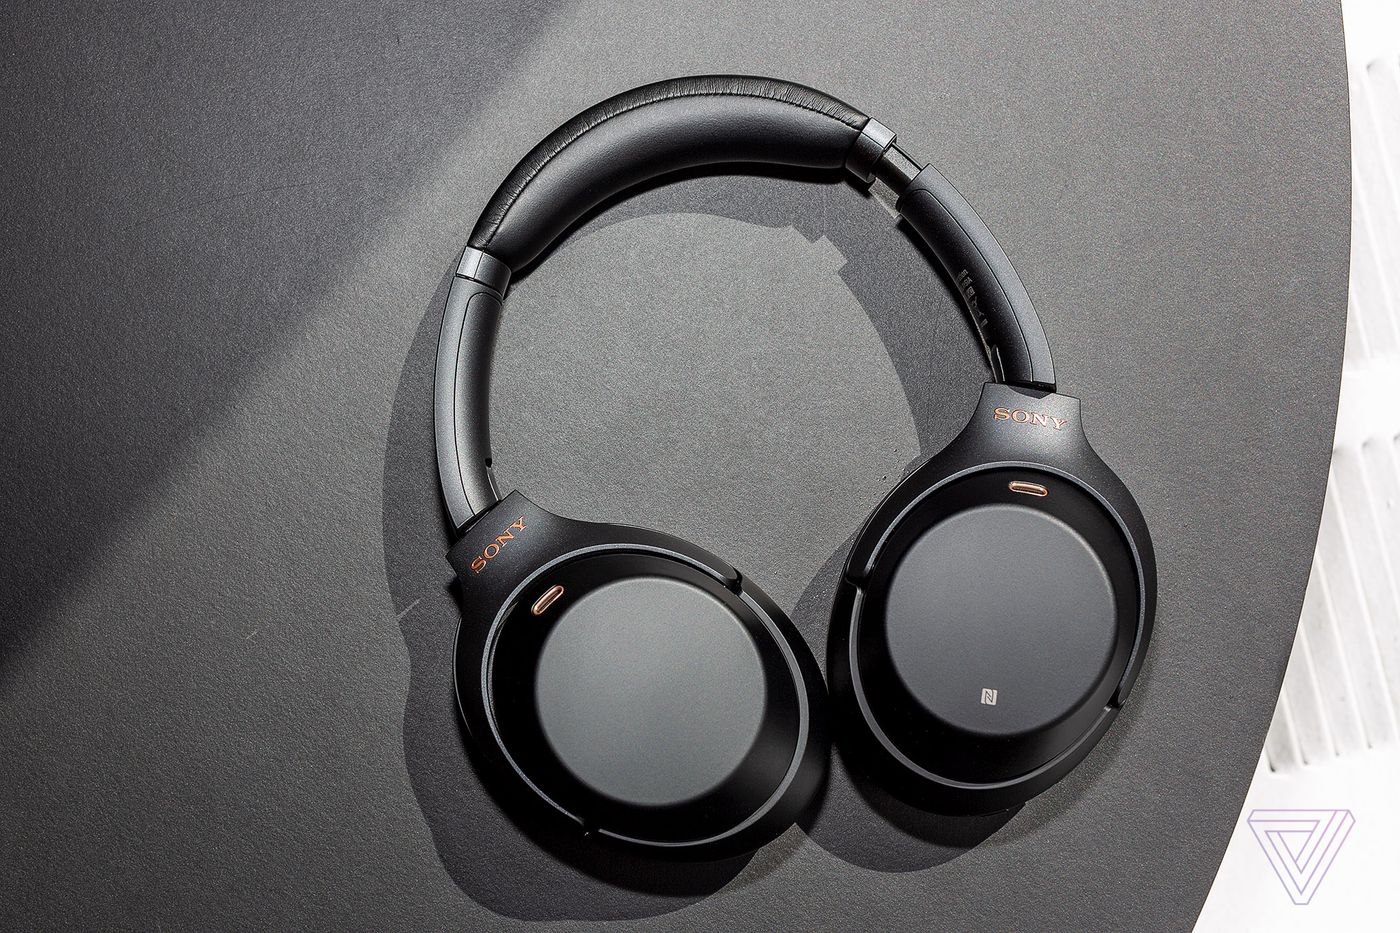 Sony 1000x M3 Review Supreme Noise Canceling Headphones The Verge